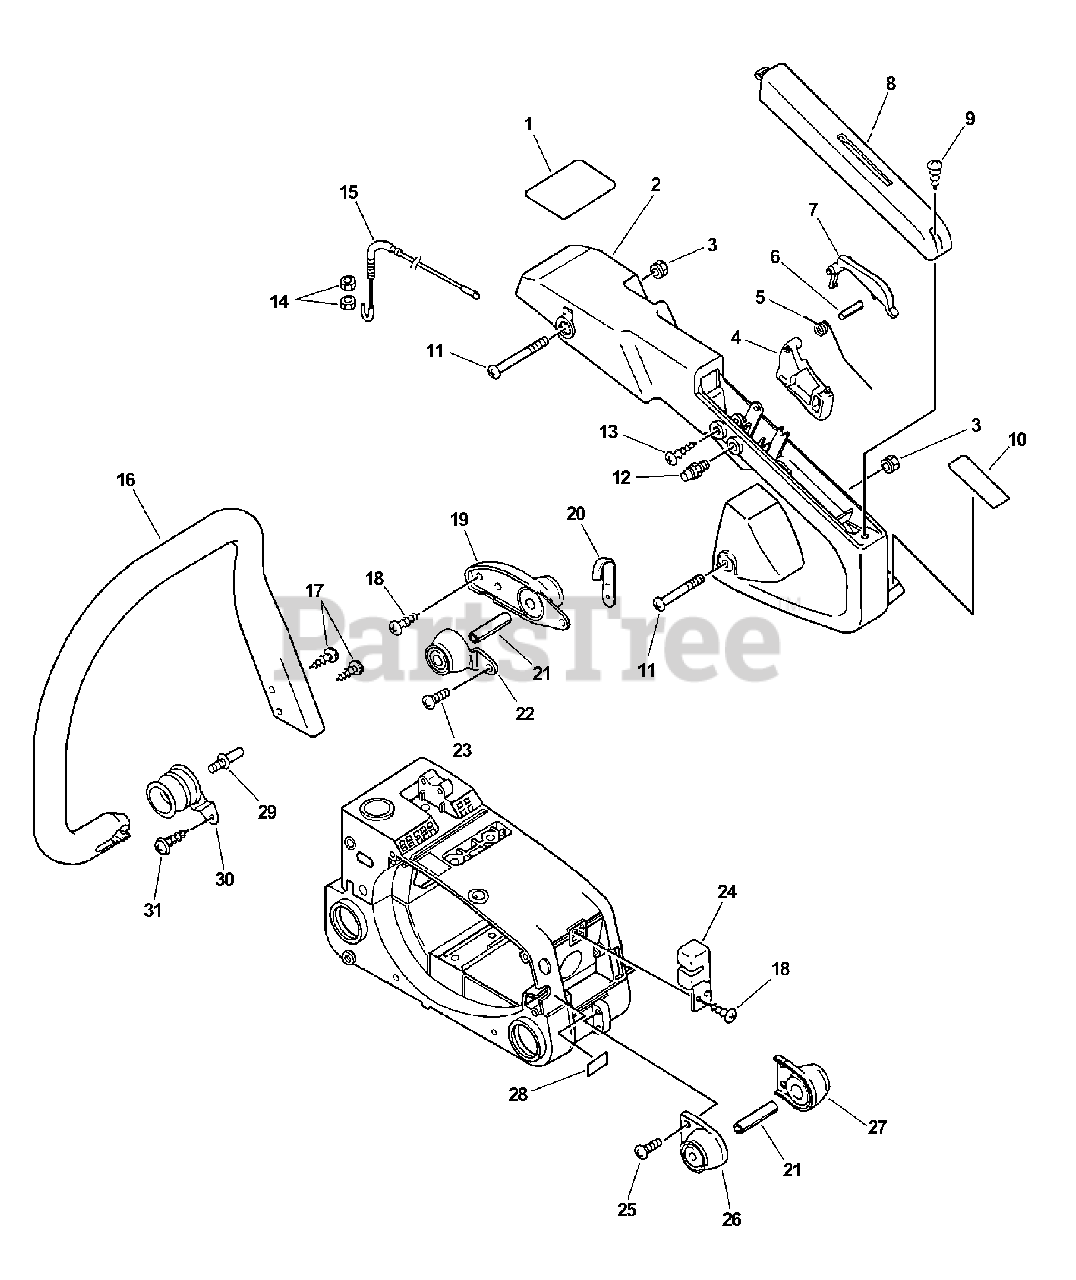 Echo Parts On The Handles Throttle Control Diagram For Cs